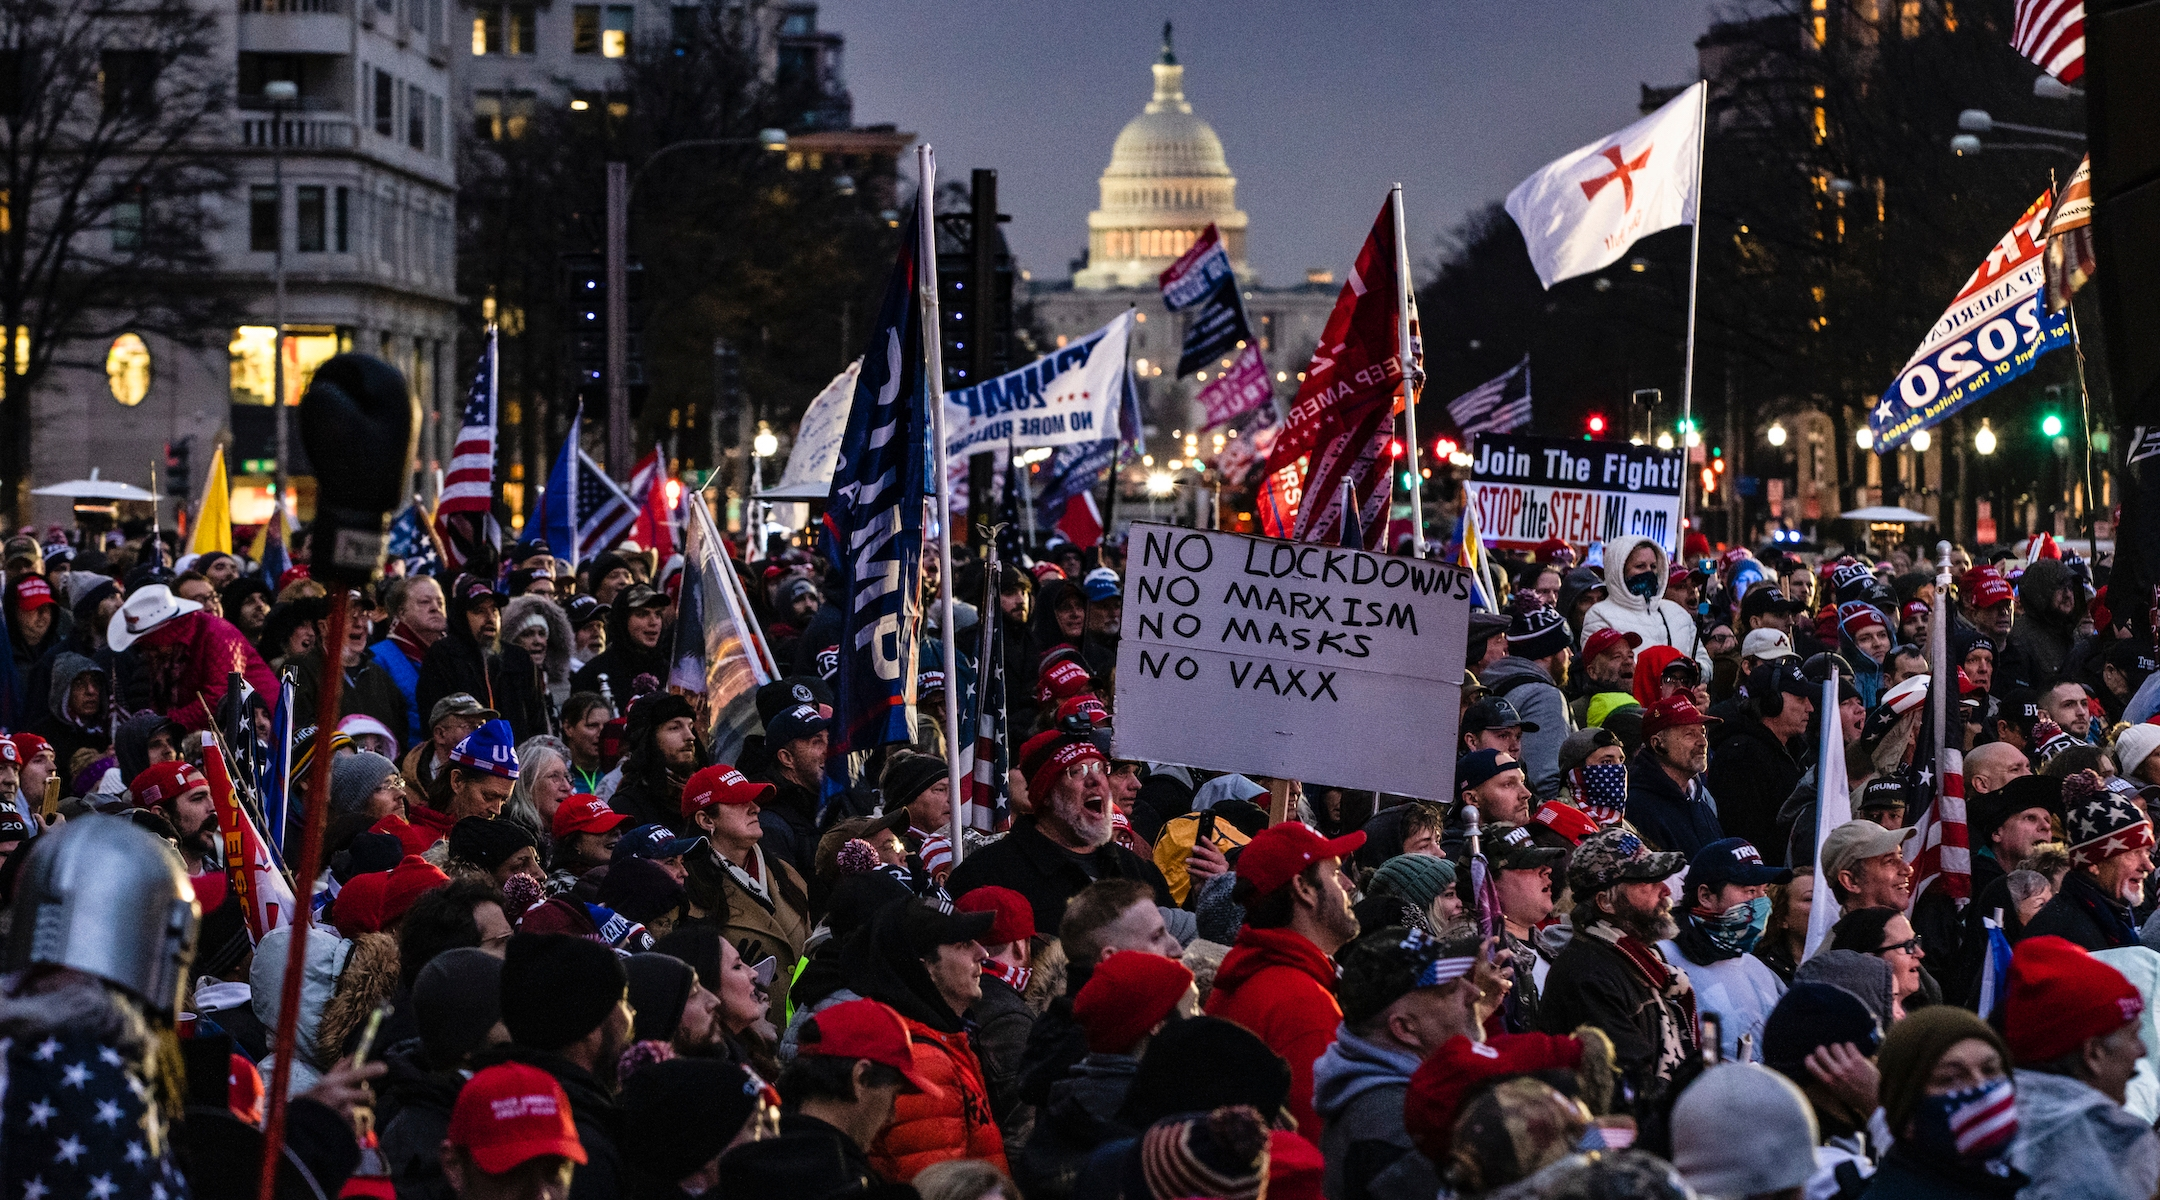 Supporters of President Donald Trump gather for a rally at Freedom Plaza in Washington, DC on January 5, 2021. A string of extremists are expected at the rally. (Samuel Corum/Getty Images)